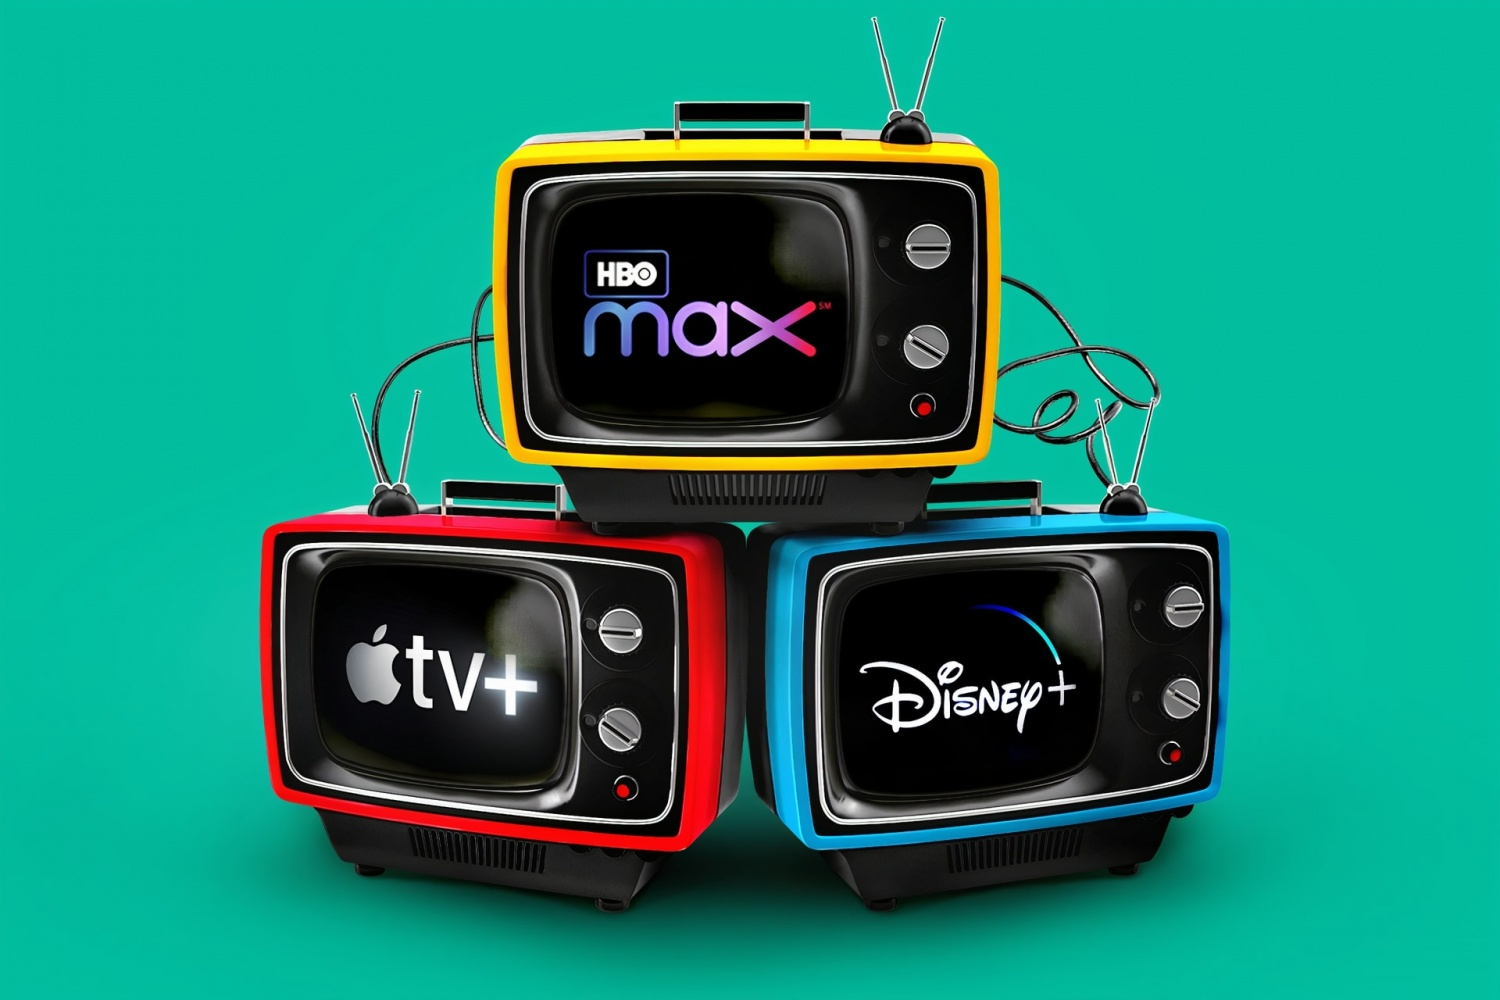 HBO Max is Surprisingly Awesome but is it Really for Everyone?